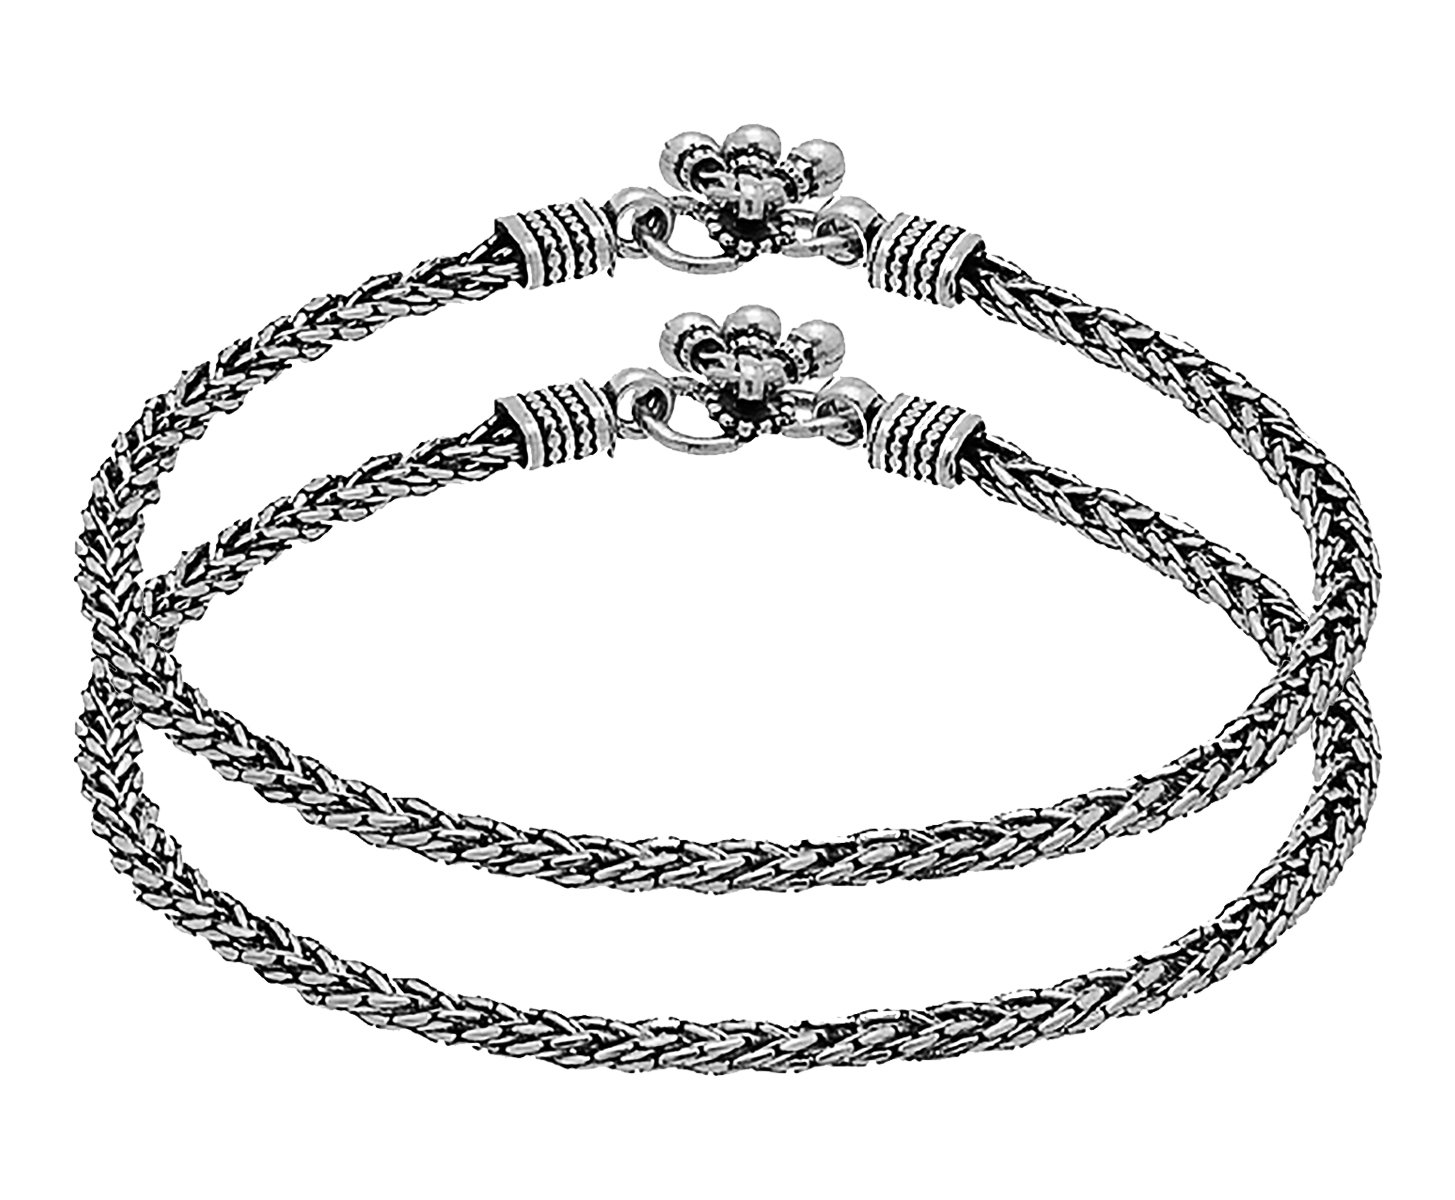 D&D Crafts Modern Sterling Silver Anklet with Oxidized Silver Plating for Women, Girls